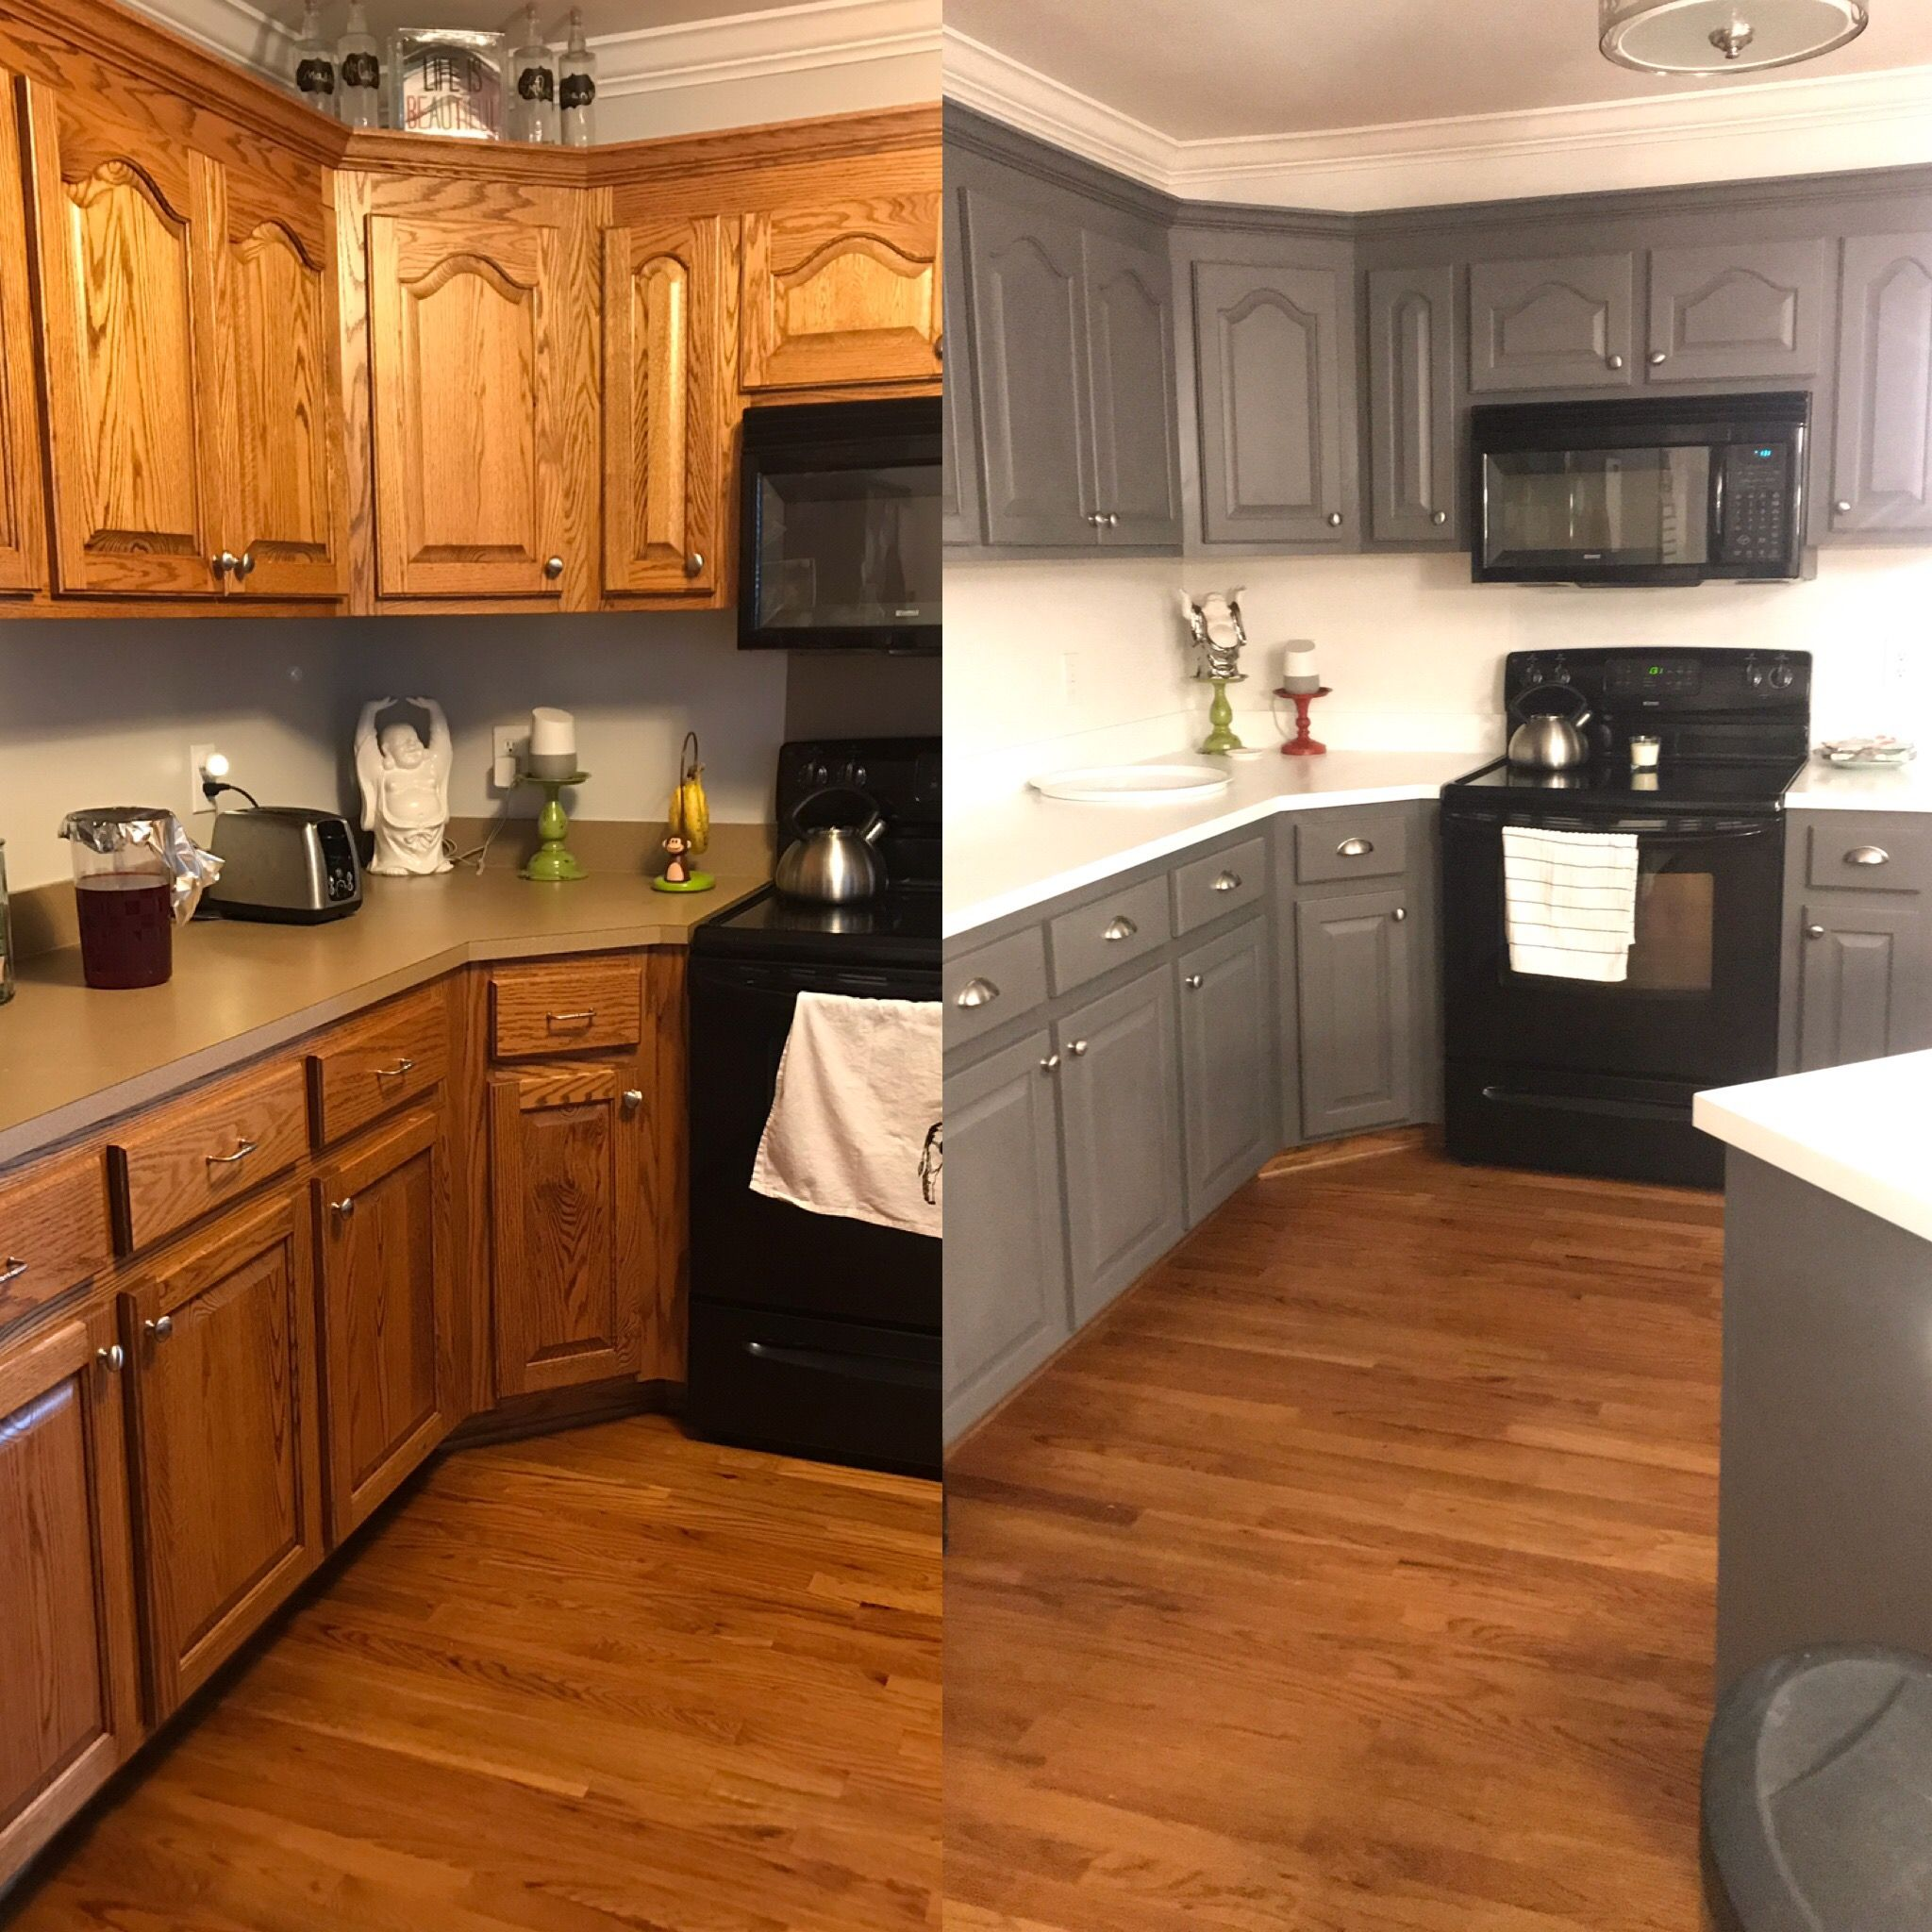 Before After Kitchen Update With General Finishes Milk Paint Driftwood Cabinets Count In 2020 Redo Kitchen Cabinets Kitchen Redo Kitchen Cabinets Before And After